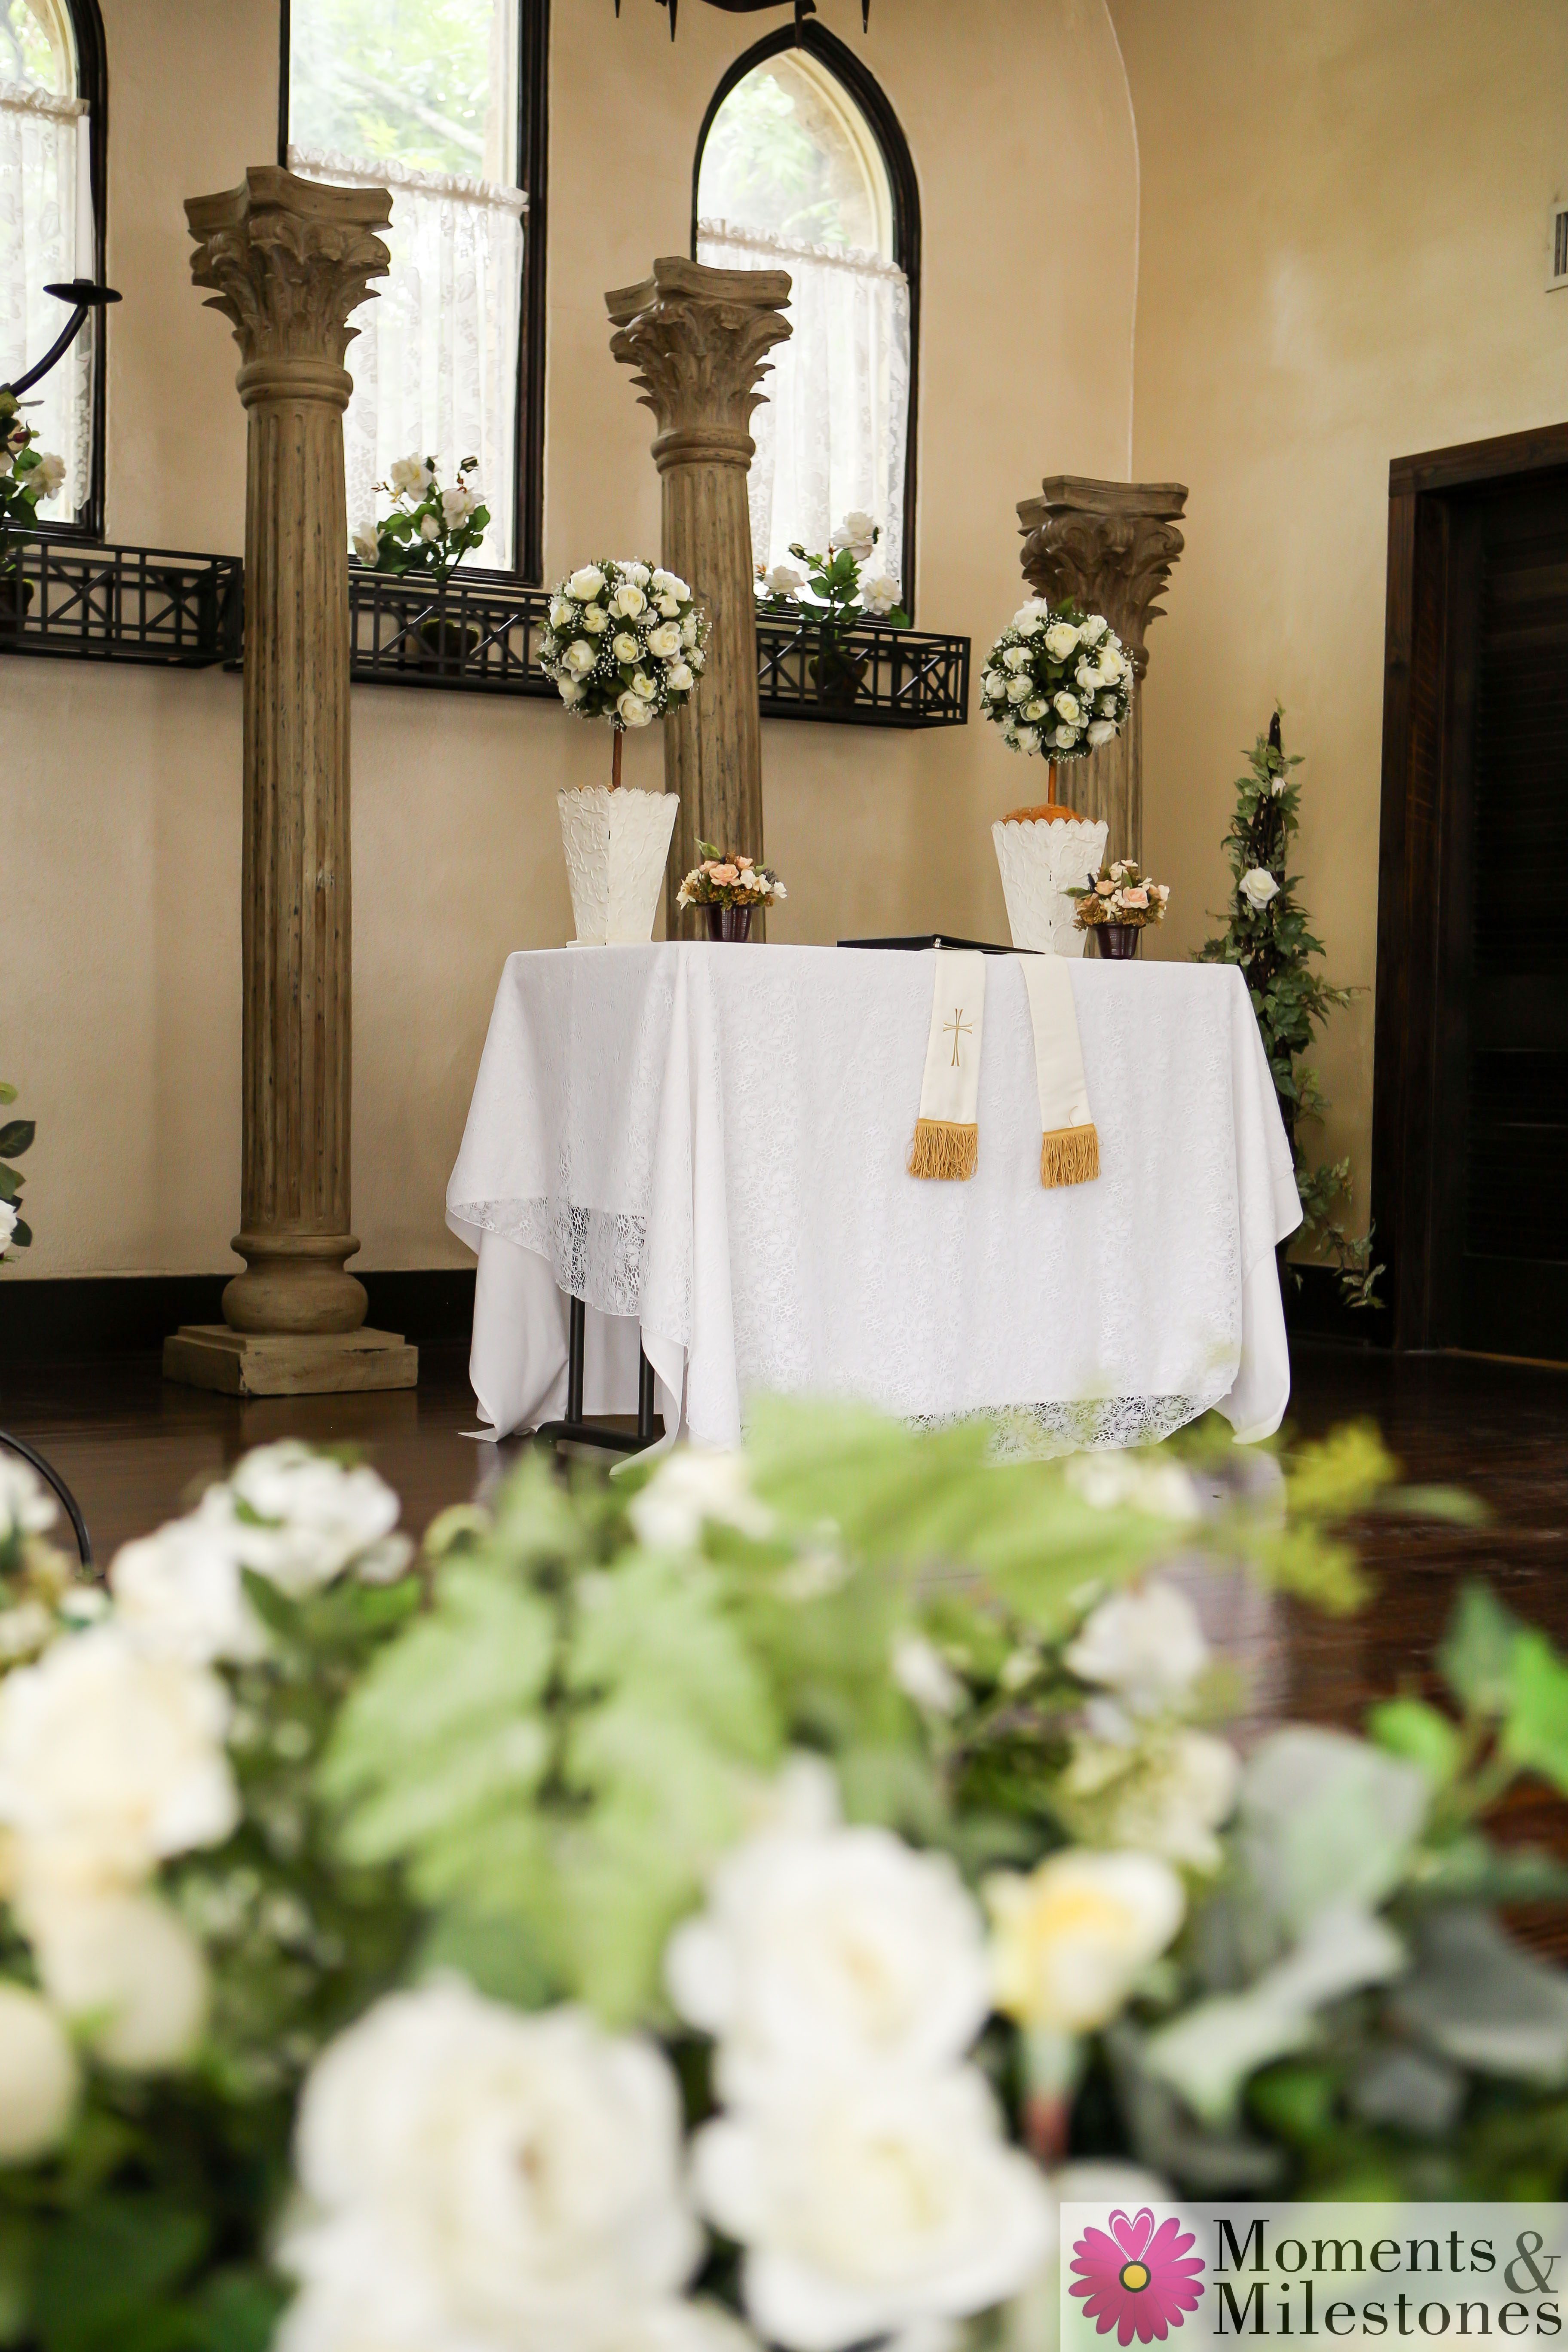 Comfort, Texas Hill Country Spinelli's Wedding Photography Wedding Coordinating Planning